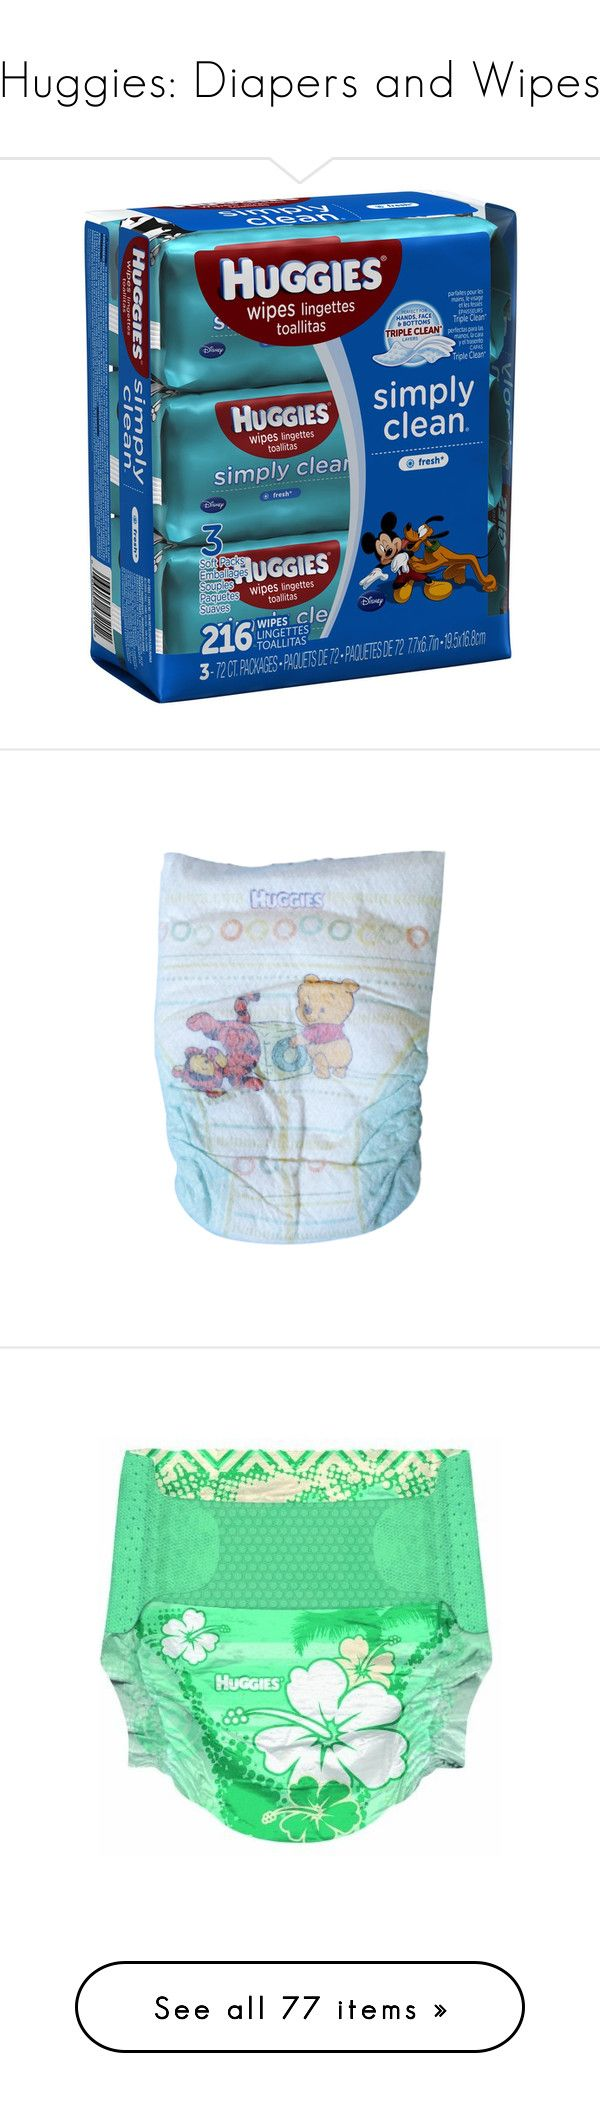 """""""Huggies: Diapers and Wipes"""" by knamts ❤ liked on Polyvore featuring baby, baby stuff, pull up, diapers, nappies, baby things, baby wipes, baby girl, baby accessories and baby clothes"""